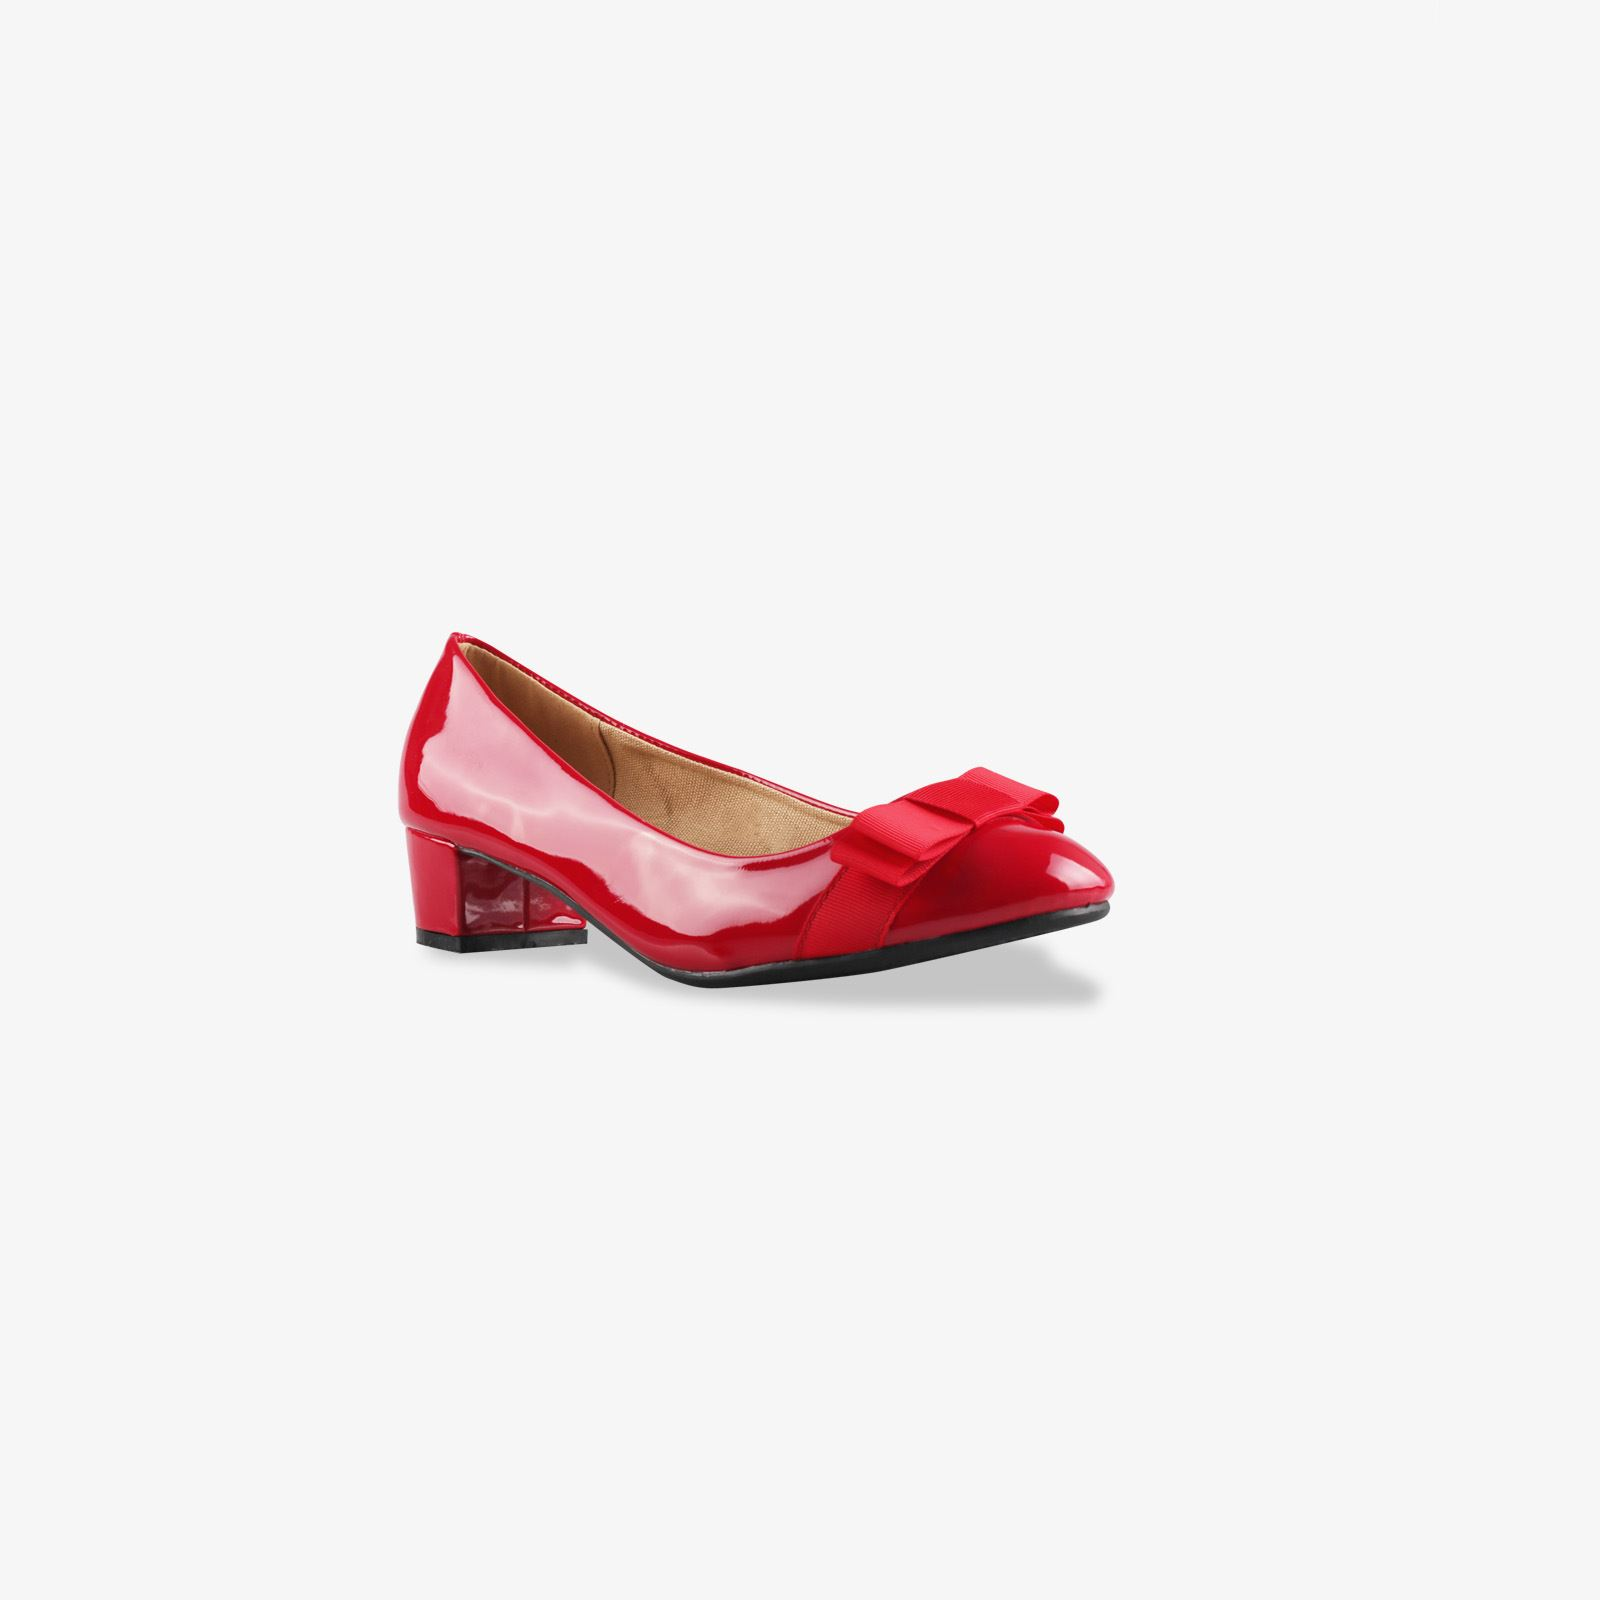 Details about Womens Patent Ballerina Bow Flats Low Block Heel Court Shoes Party Casual Pumps